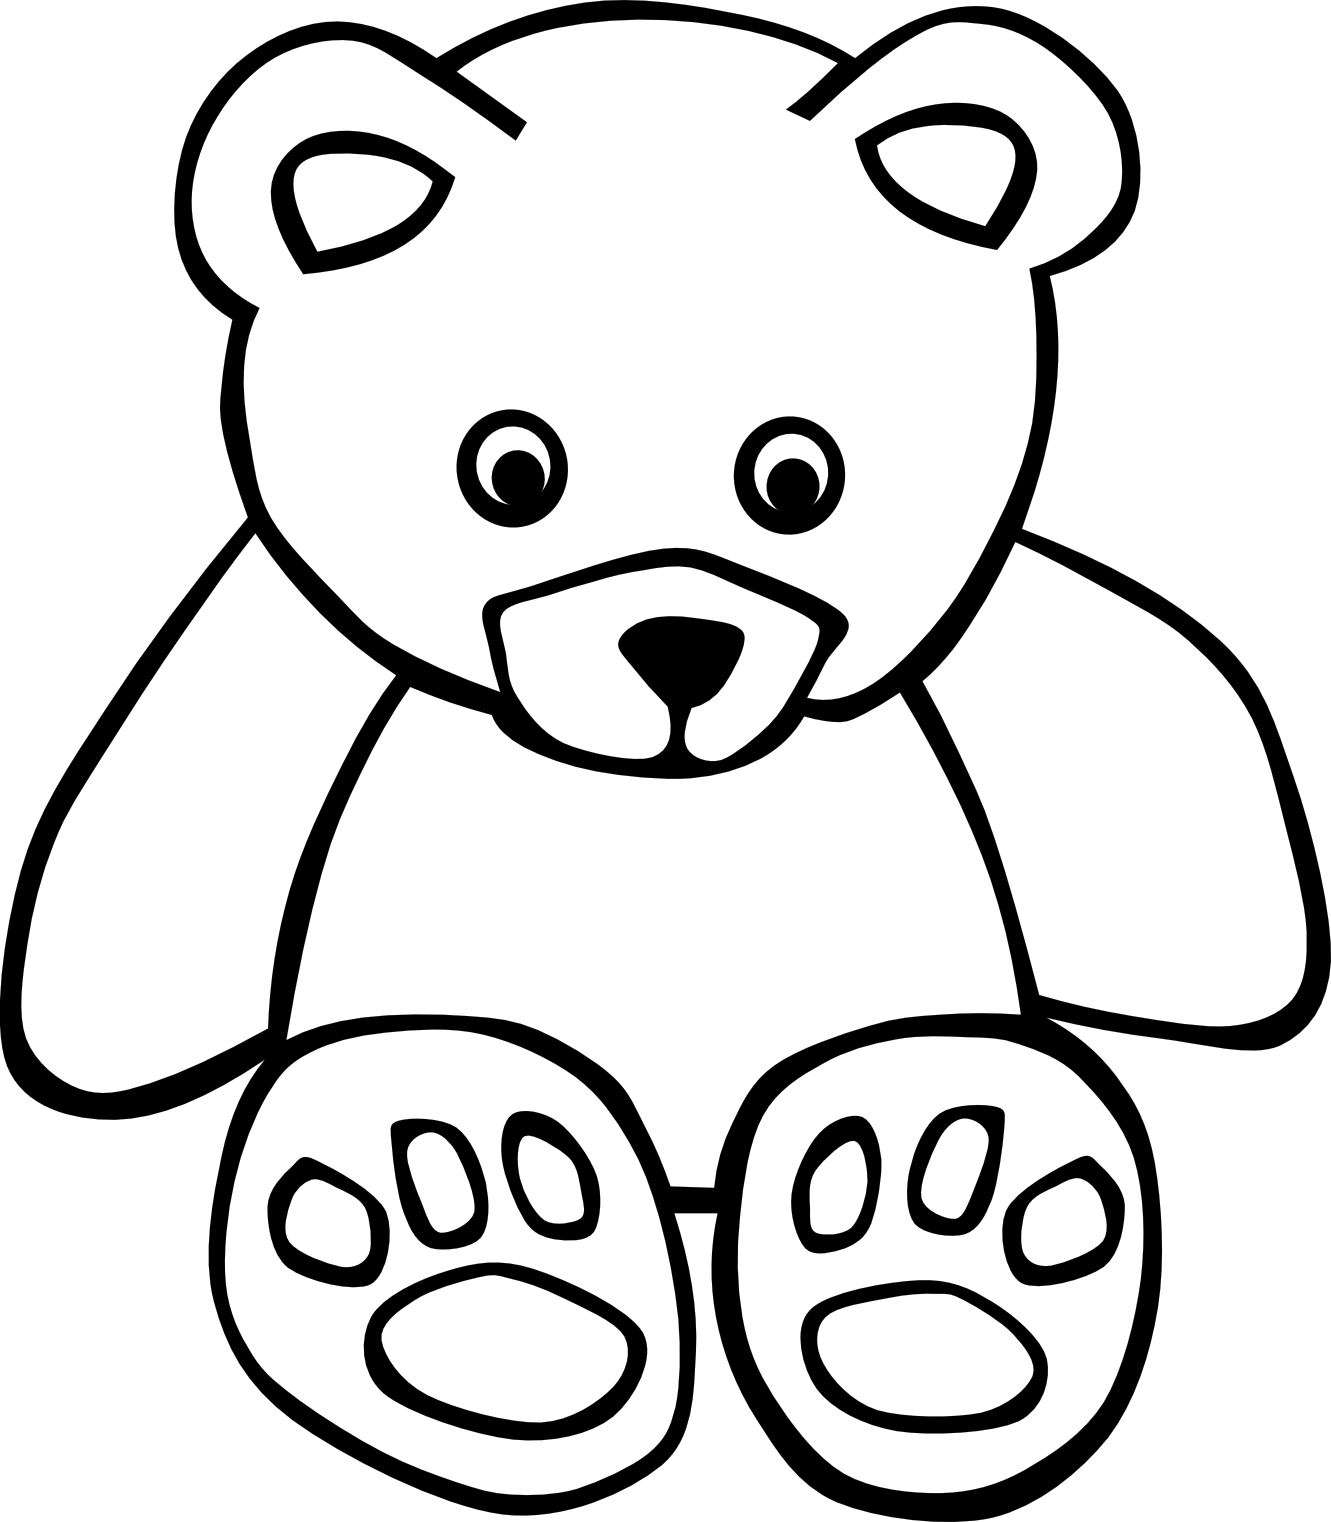 Computer clipart black and. Bear clip art white background graphic royalty free download